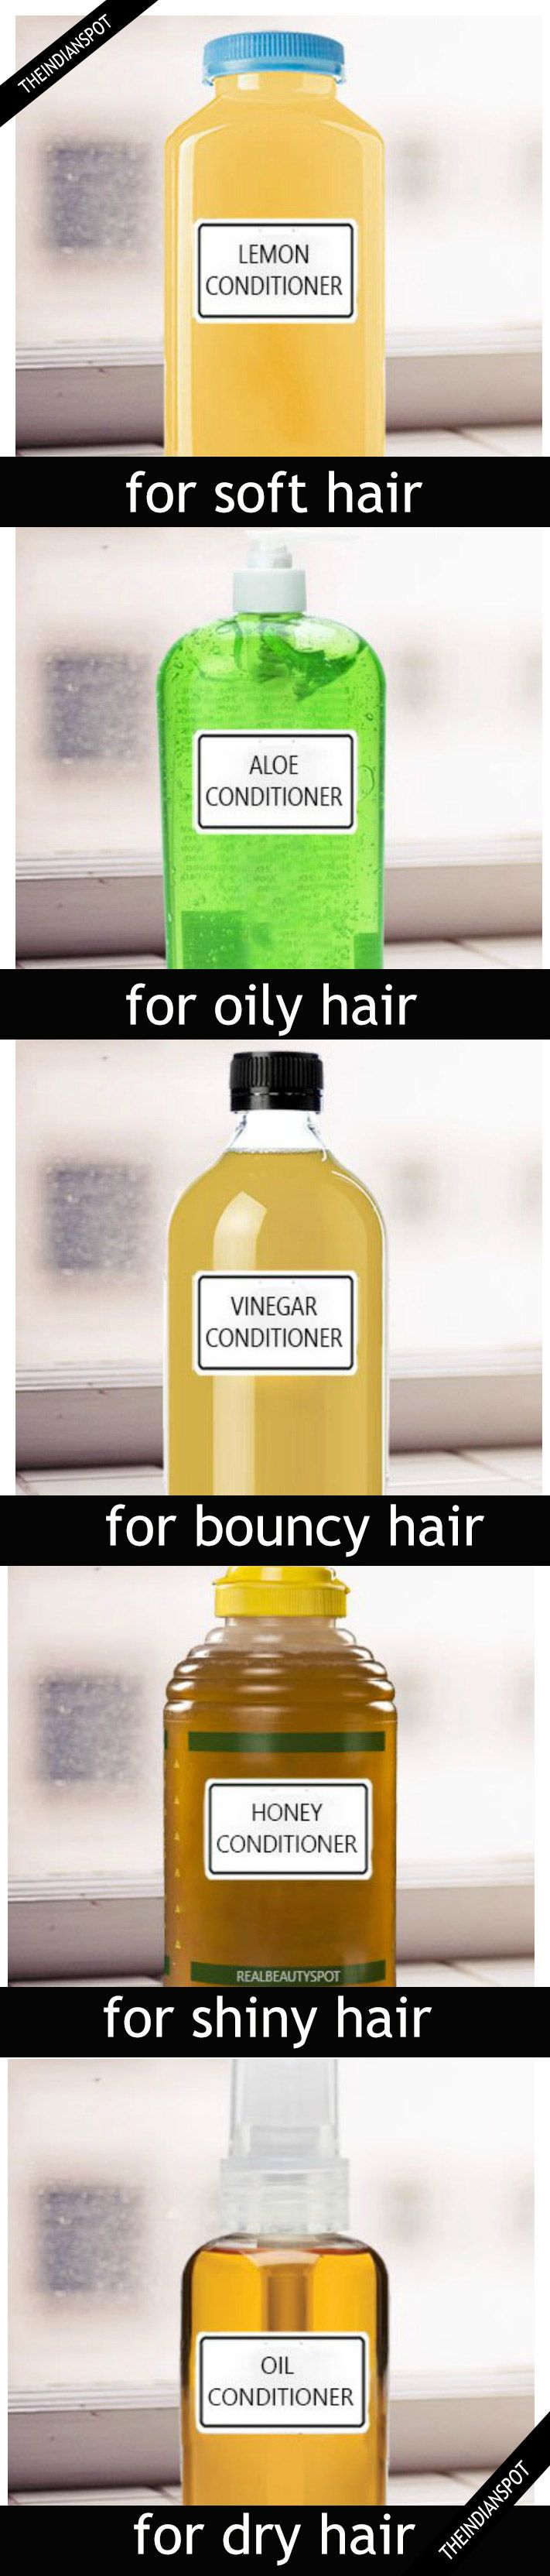 5 Natural DIY Hair Conditioner for All Hair Types                                                                                                                                                                                 More